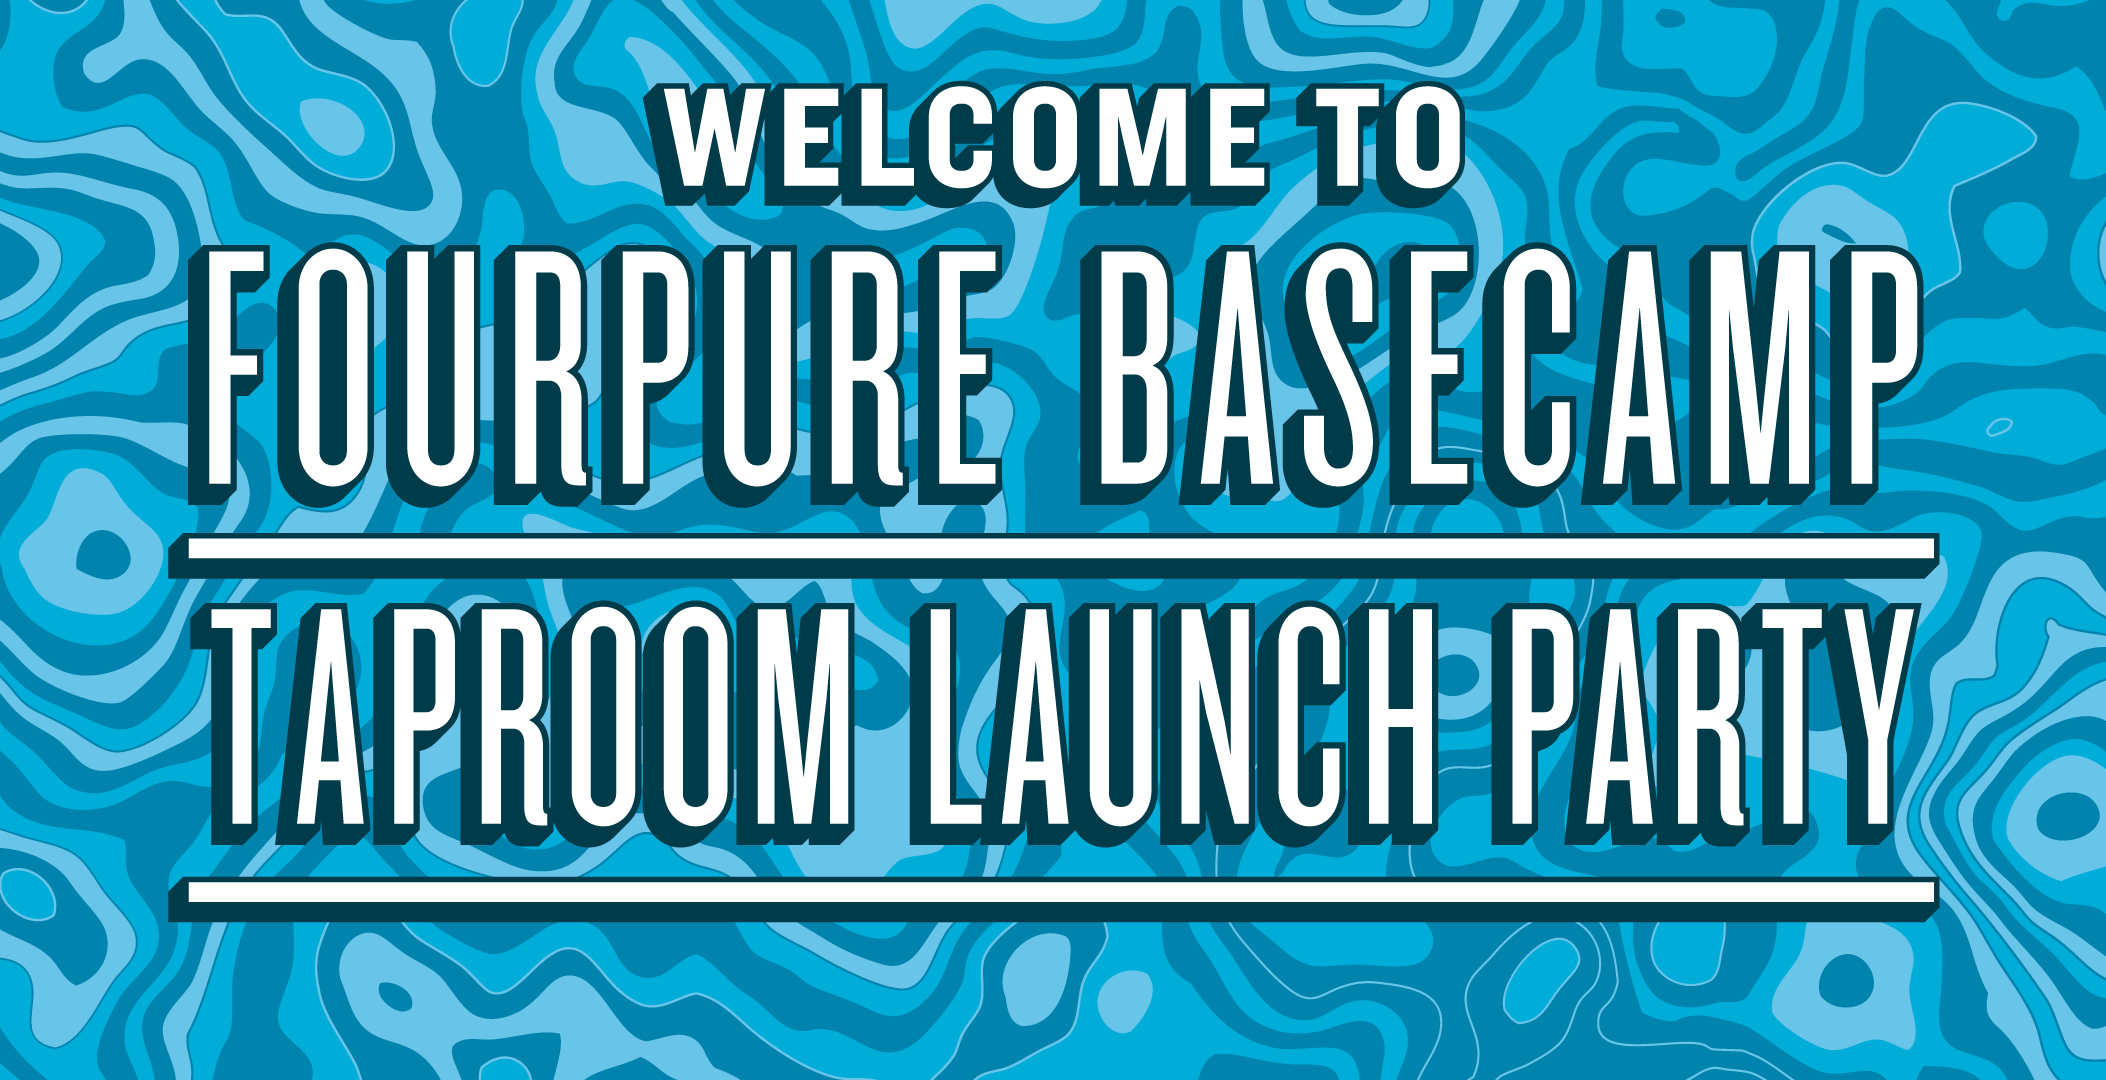 FOURPURE BASECAMP - TAPROOM LAUNCH PARTY